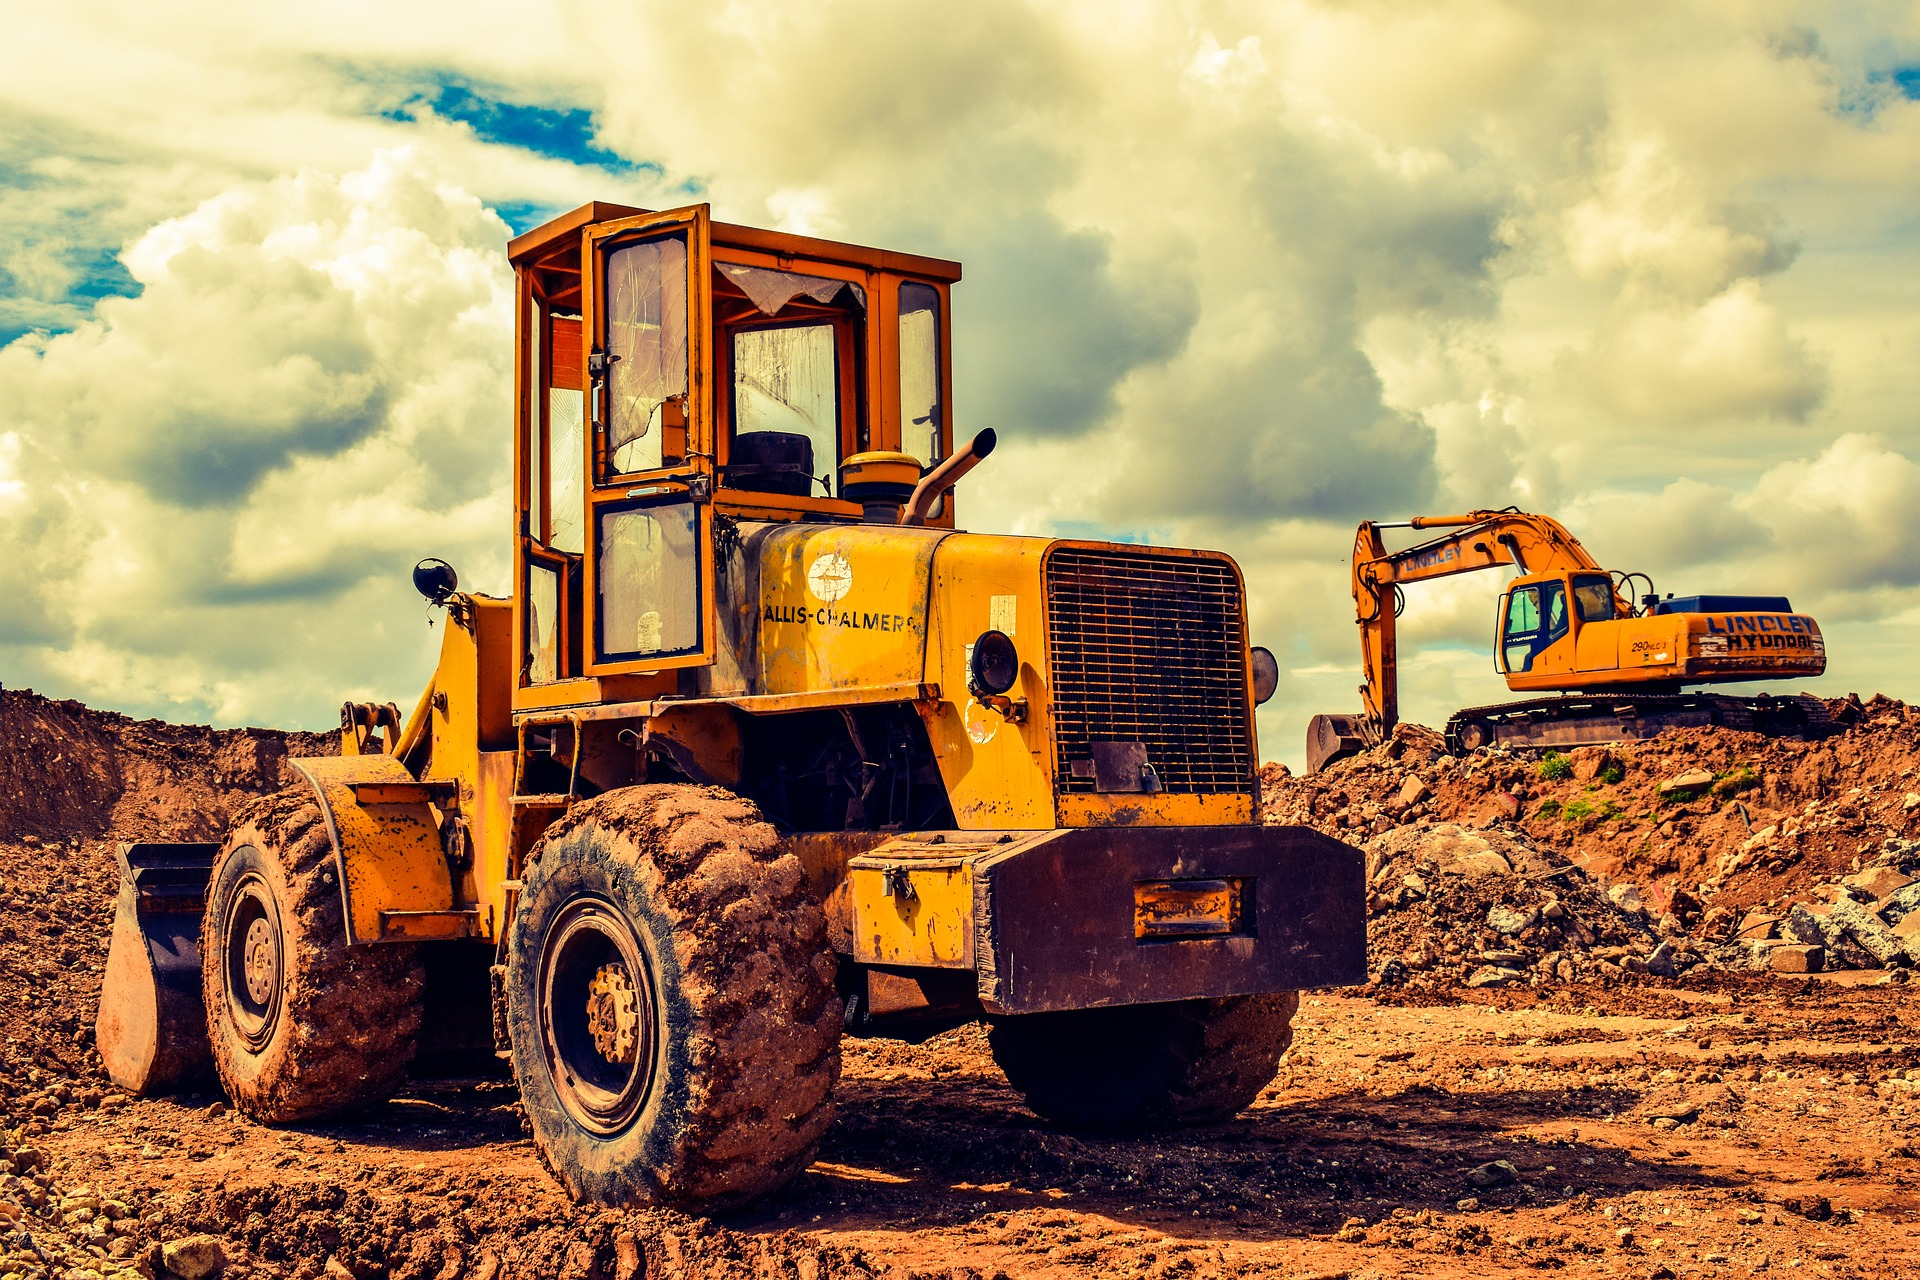 Heavy equipment in the dirt with clouds in the background